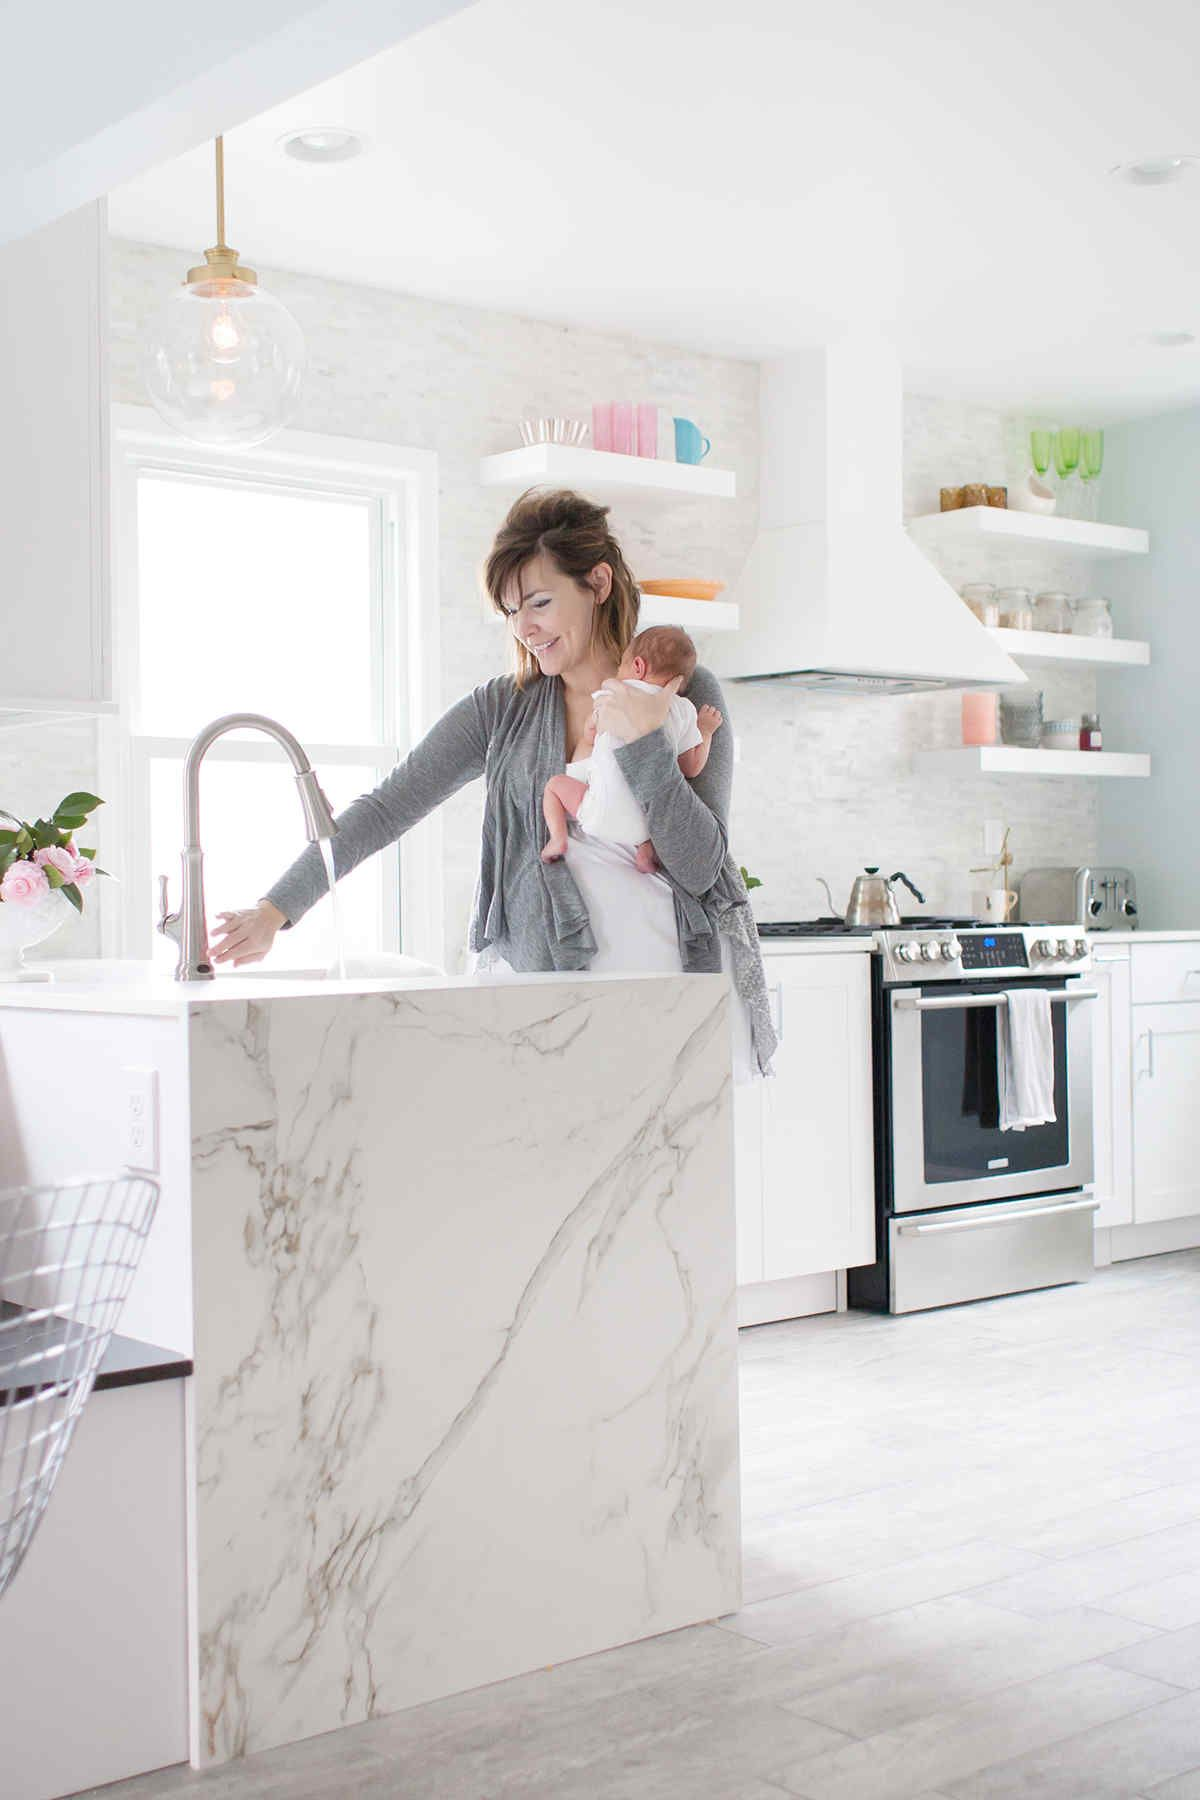 Our New Kitchen Reveal with the Home Depot | Ventas, Hermosa y Cocinas